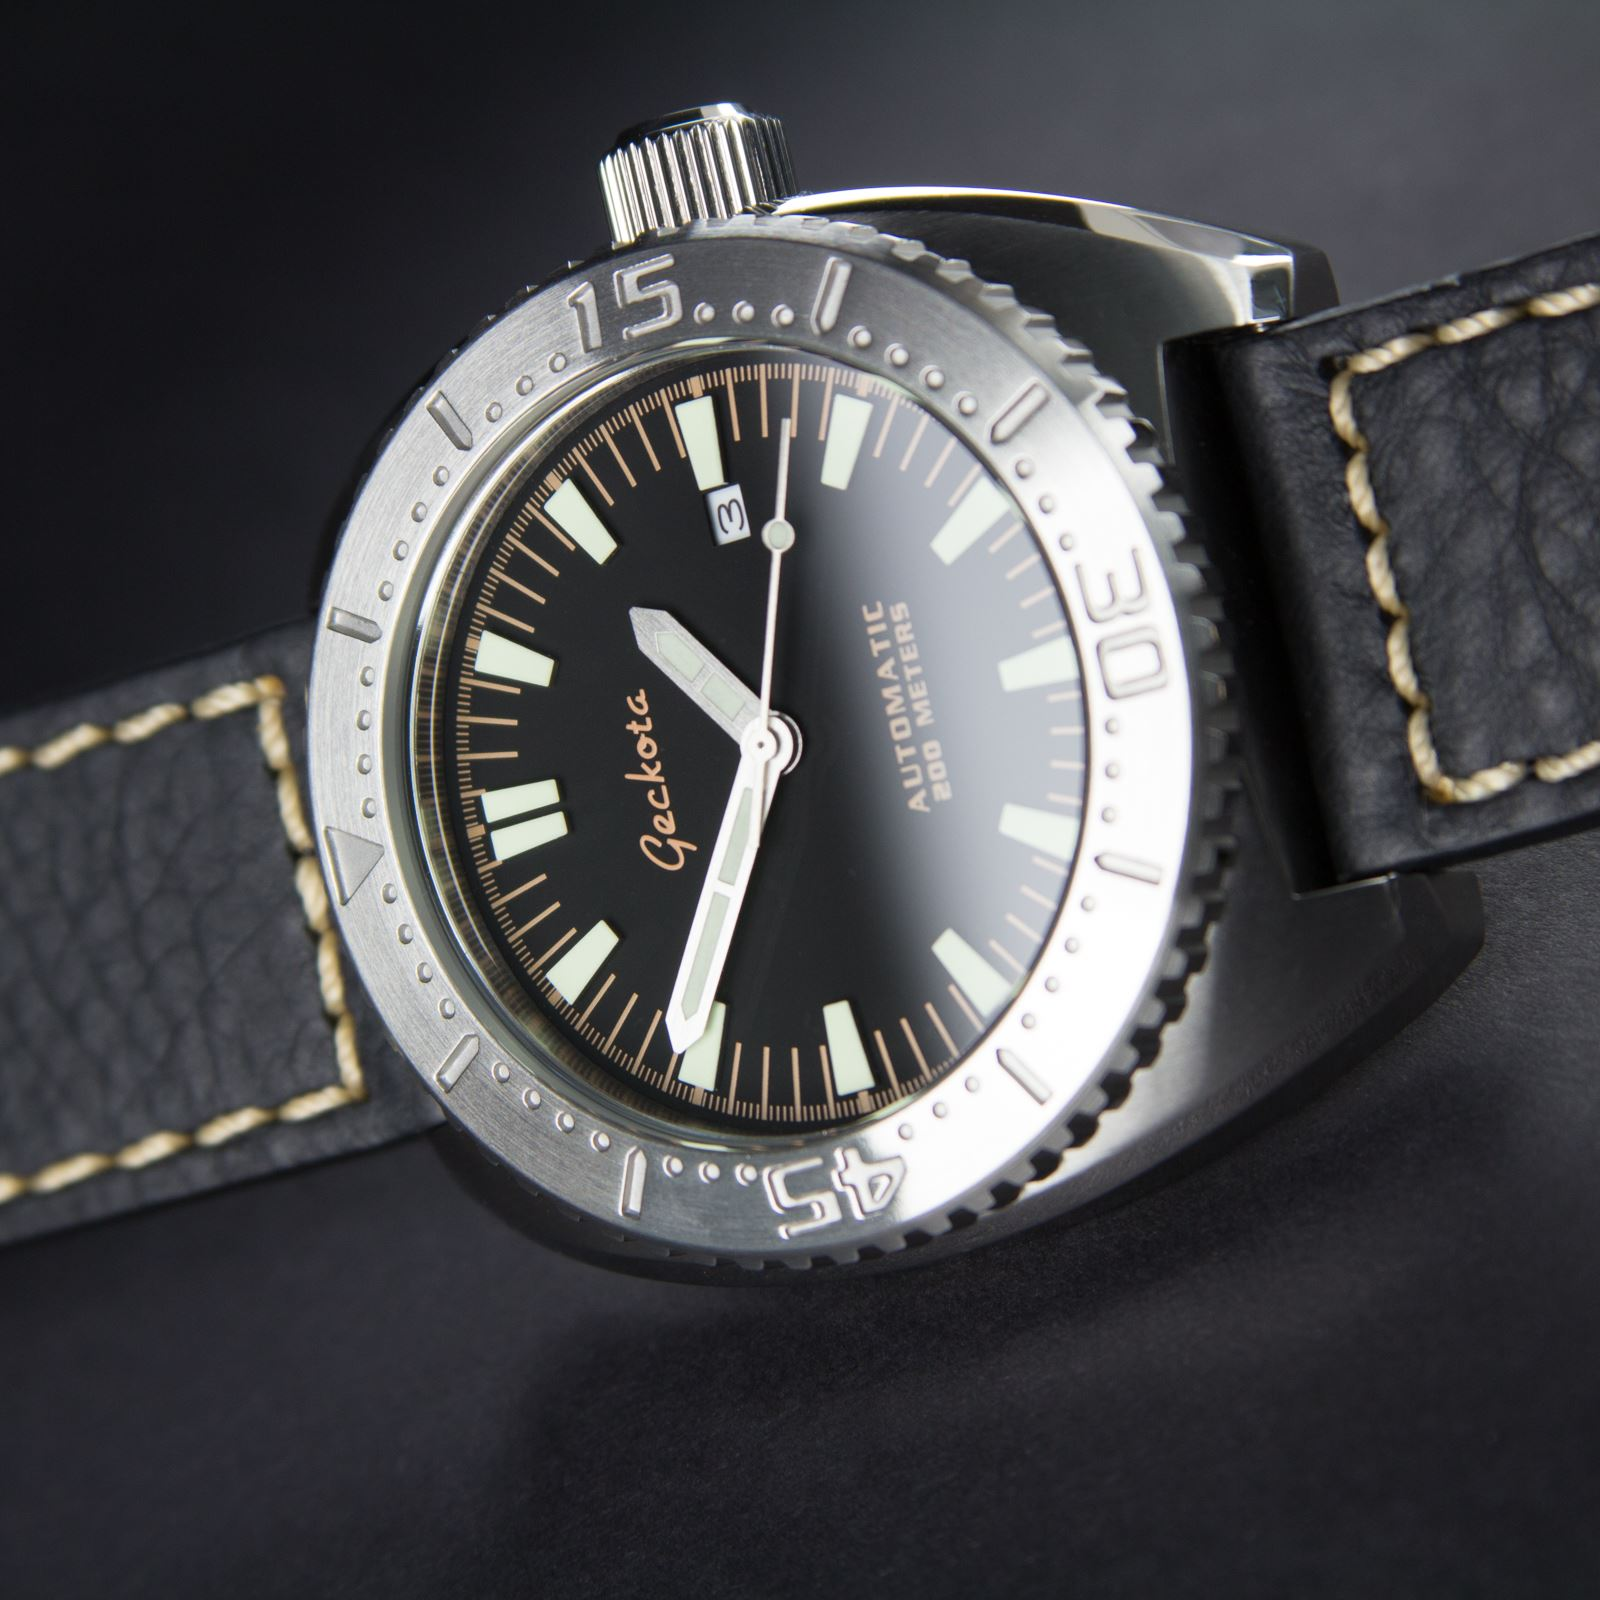 New geckota k3 mechanical automatic miyota 8215 chunky diver 39 s watch ebay for Geckota watches